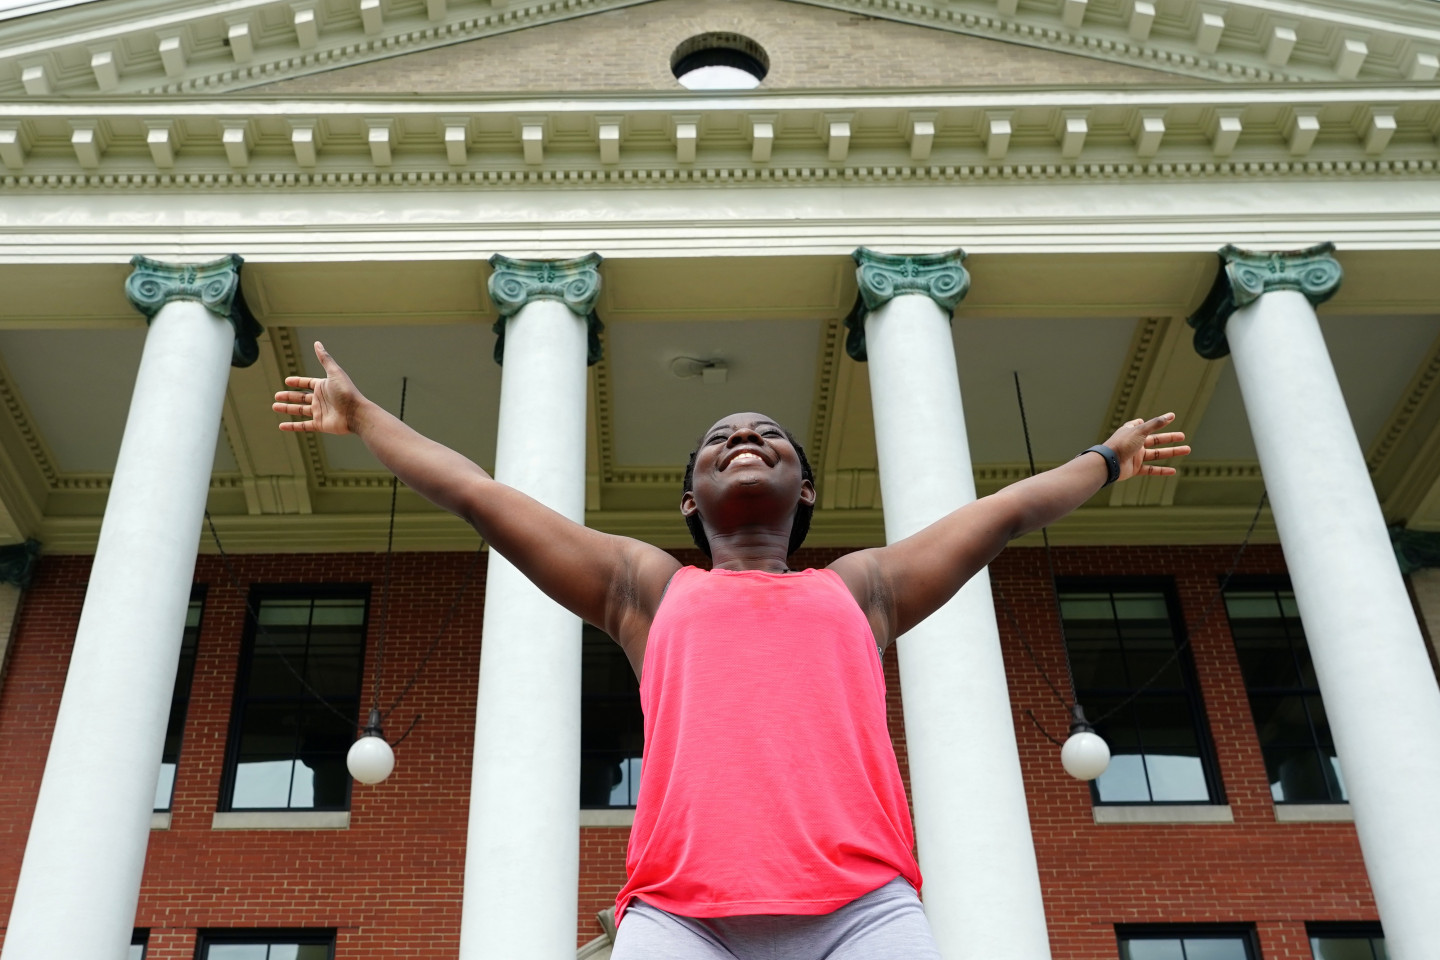 A student stands with her arms outstretched in front of Heritage Hall.